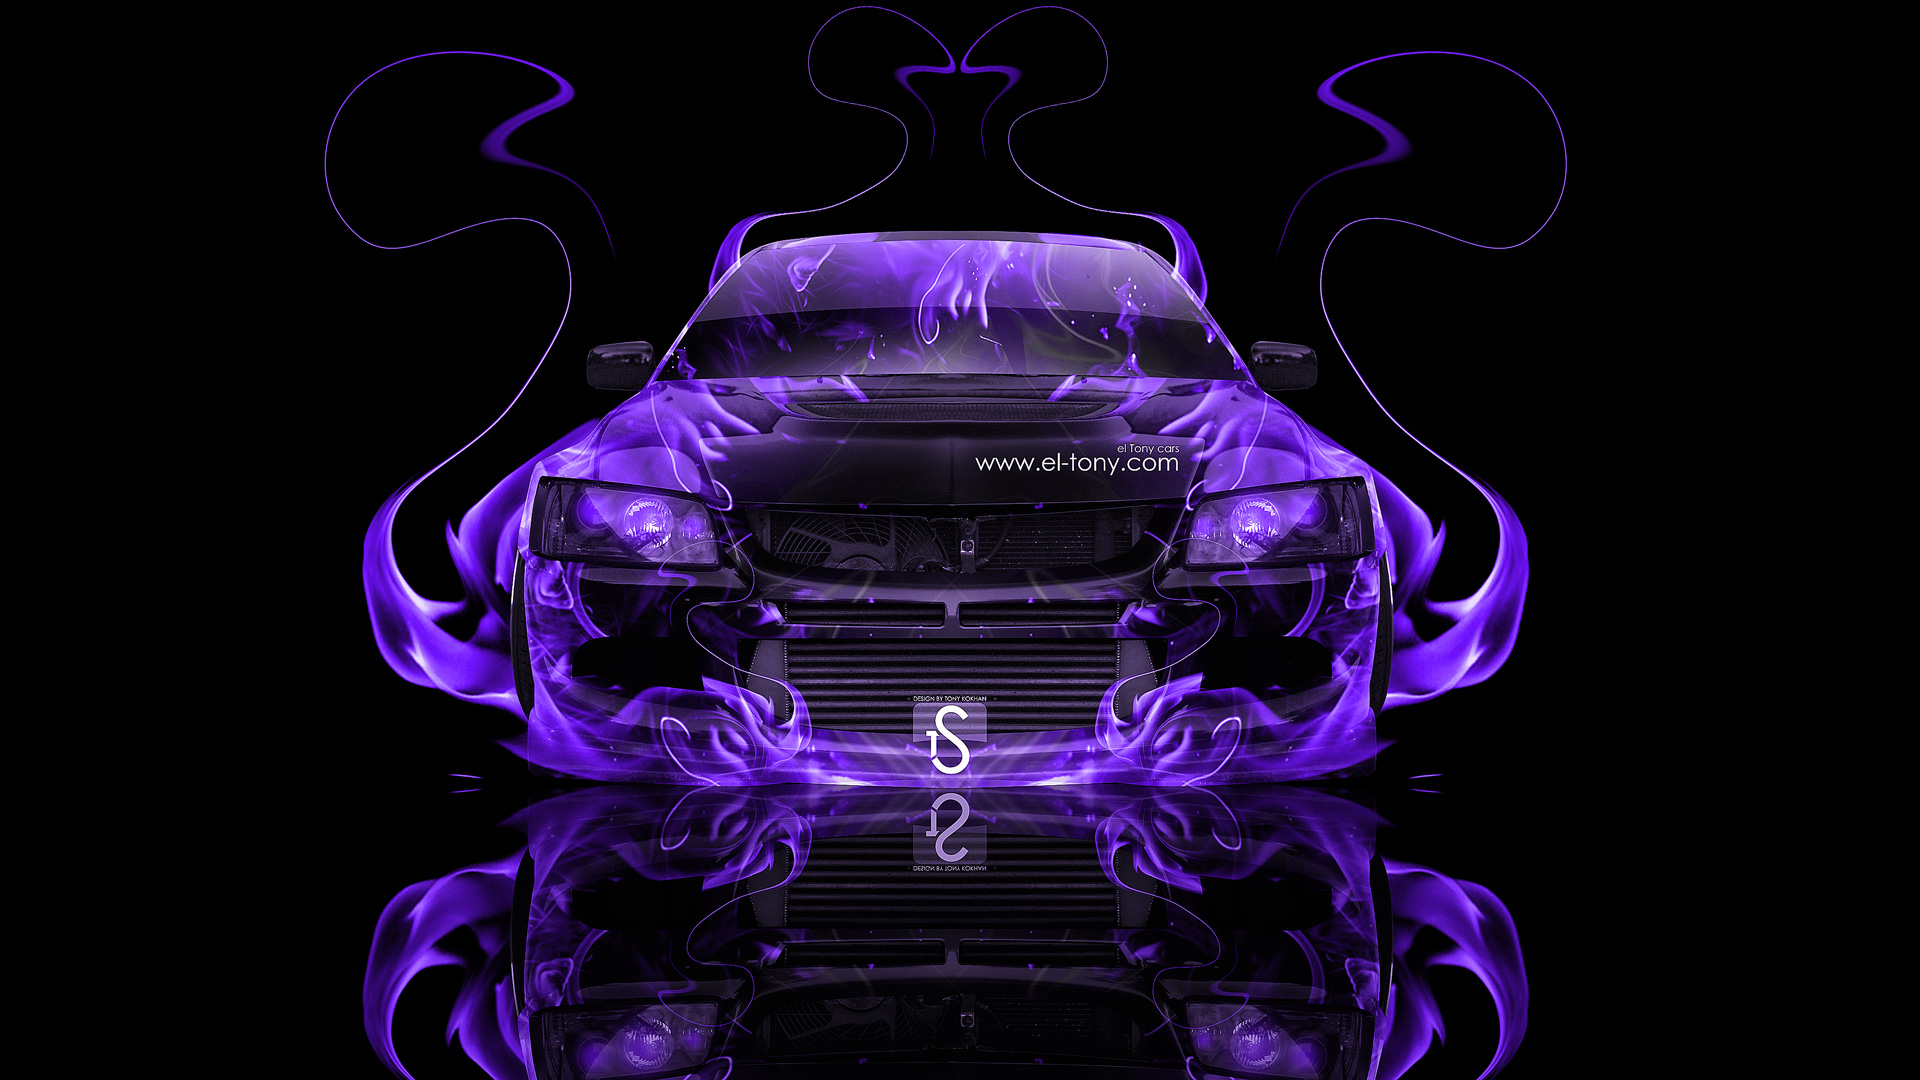 Iphone 2g Wallpaper For Iphone X Mitsubishi Lancer Evolution 8 Jdm Fire Abstract Car 2013